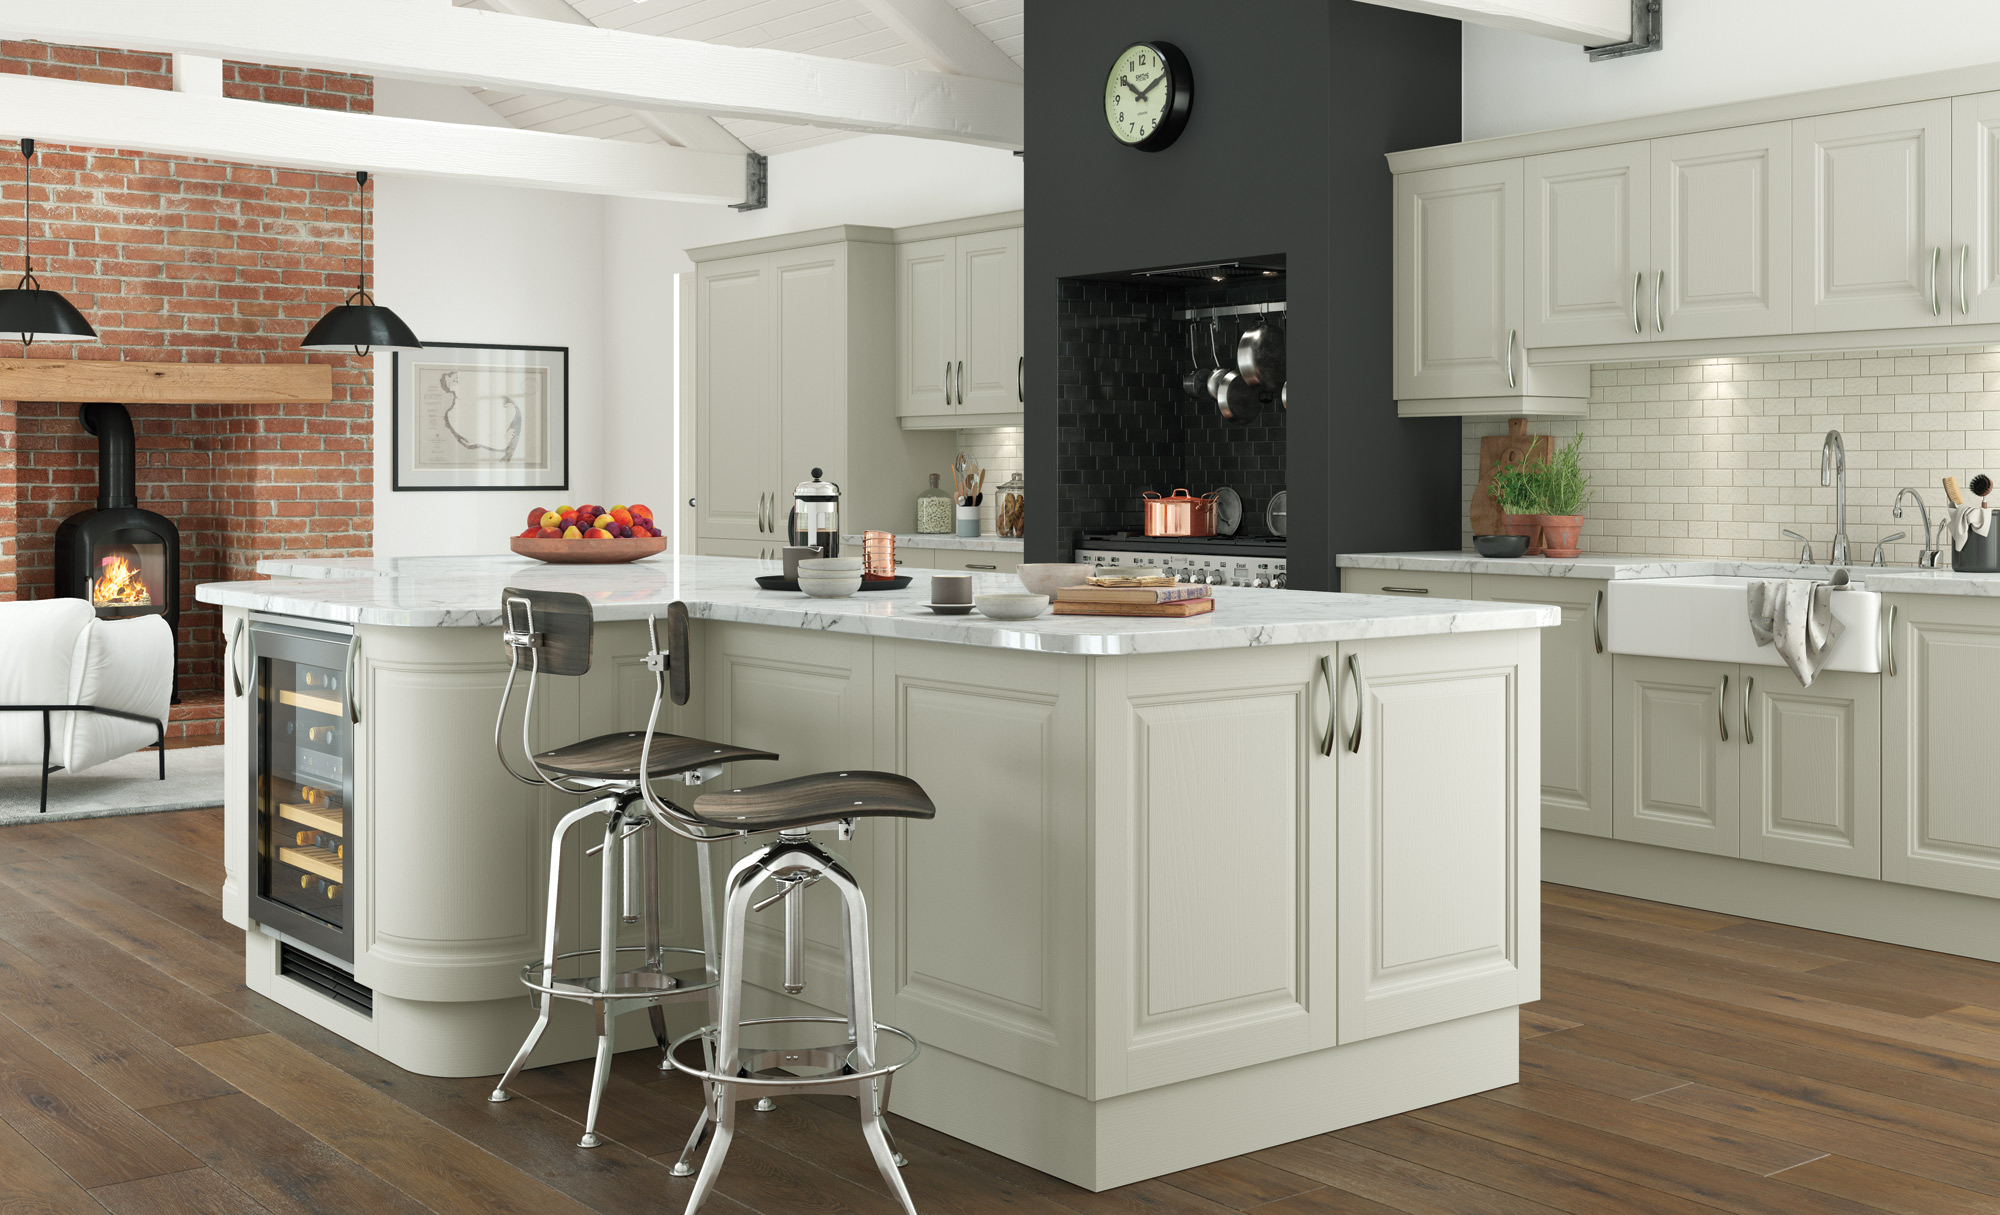 Classic Traditional Country Kitchen - Jefferson Painted Mussel Kitchen - Kitchen Design - Alan Kelly Kitchens - Waterford